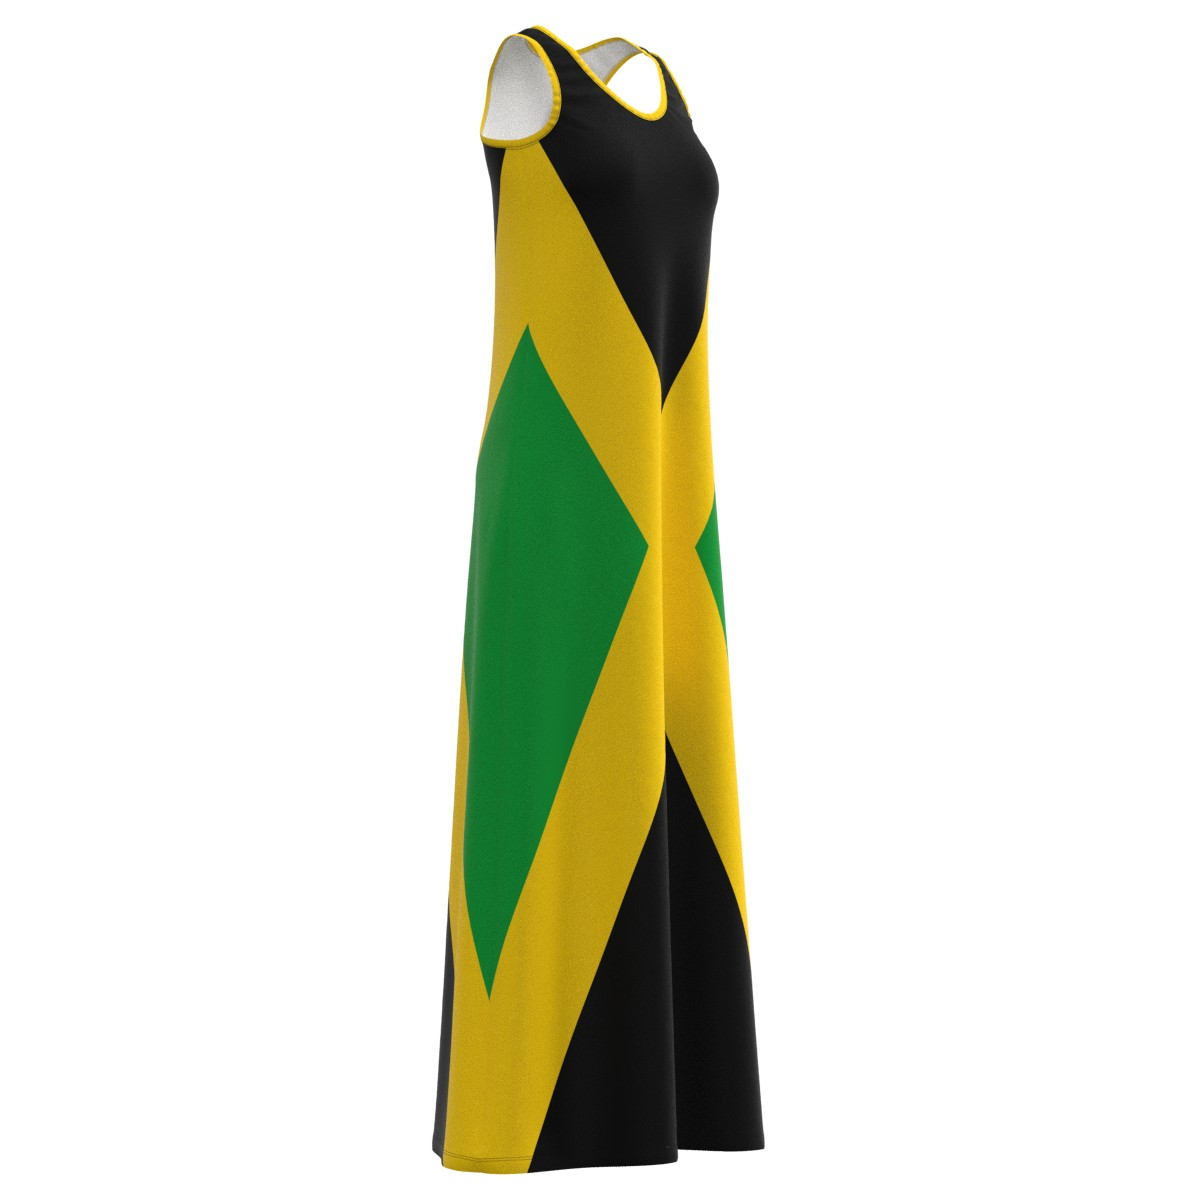 Jamaica greenical Flag colors Jamaican Jam Jam Jam Maxi Long Dress Size XS-5XL Plus ab47af